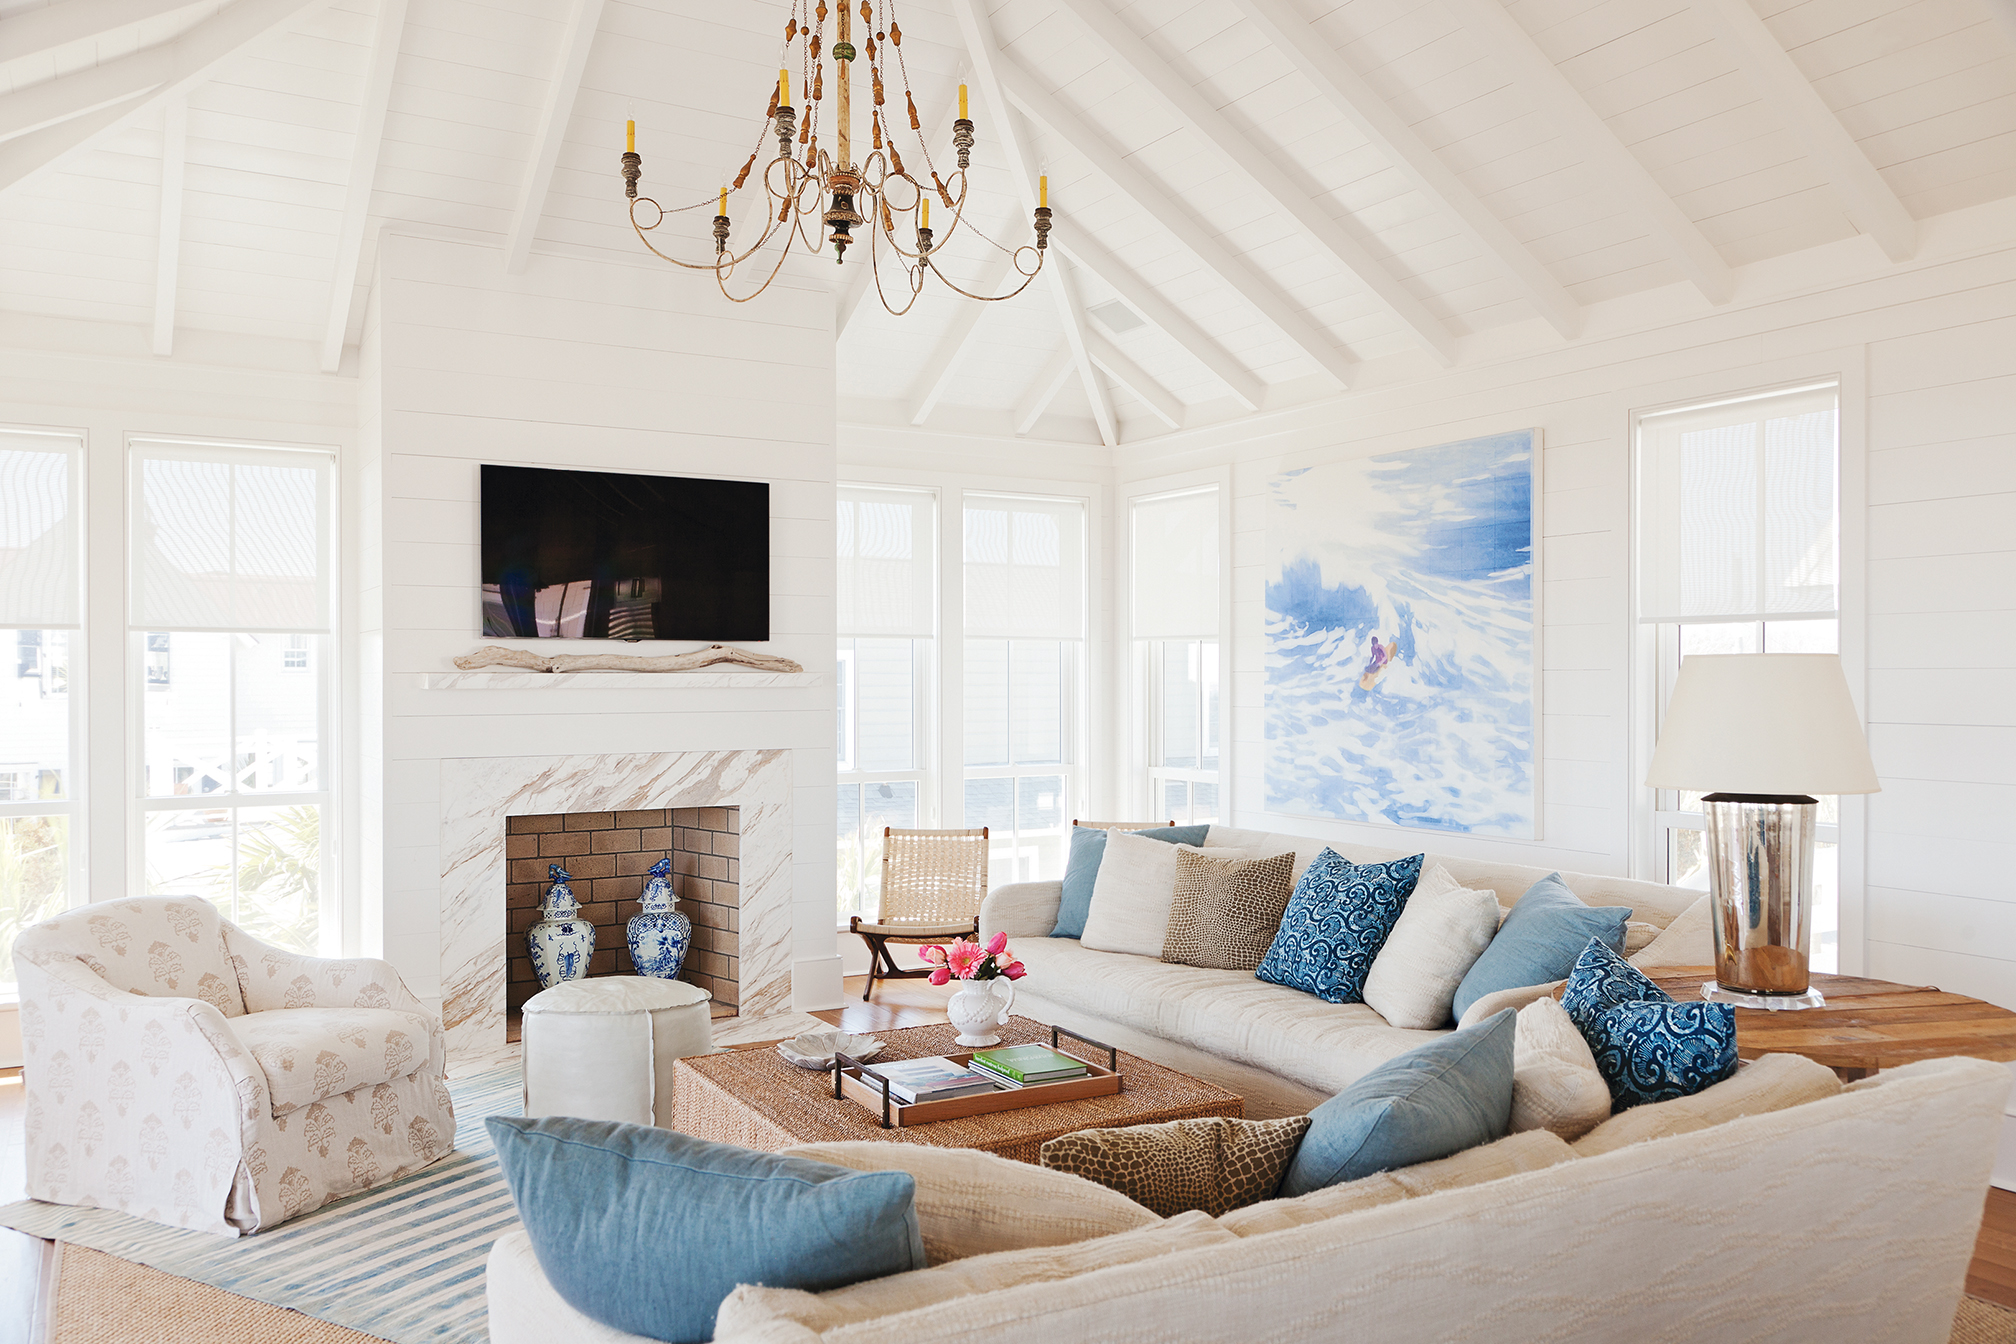 Old-School Charm: White shiplap walls throughout lend a classic beach-house feel while showcasing contemporary art, such as this surfer painting by Isca Greenfield Sanders in the living room.